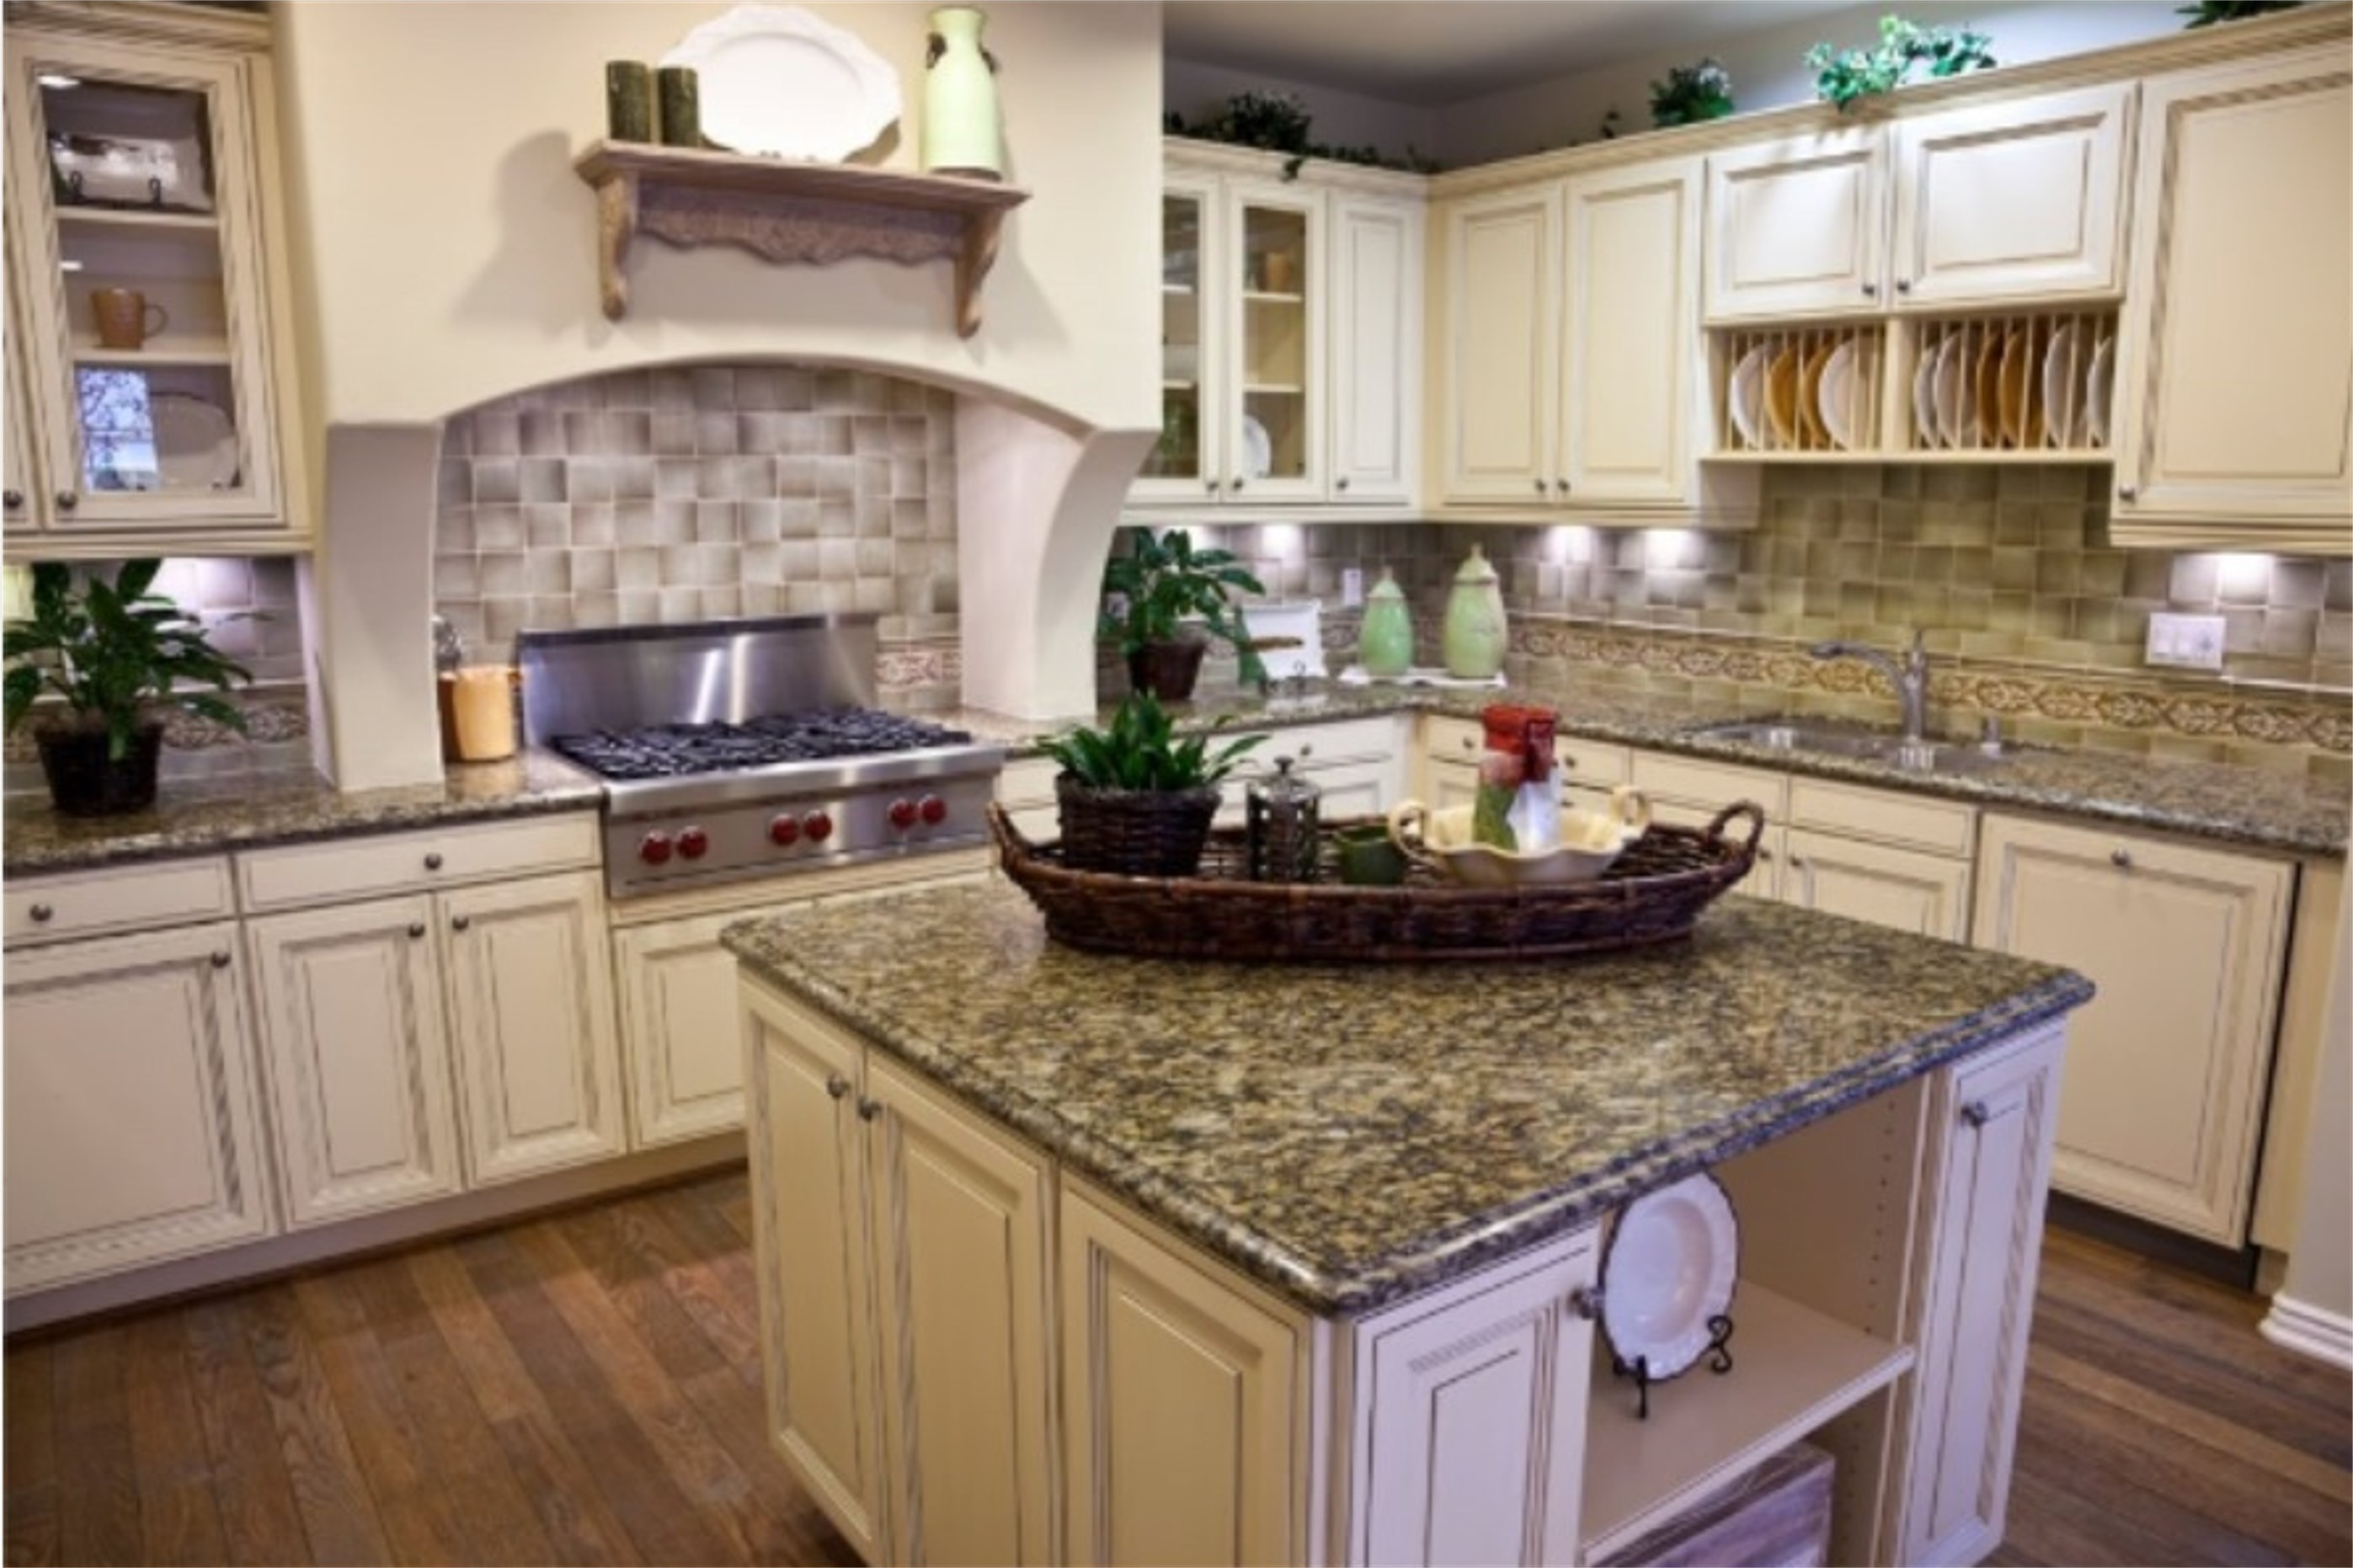 different and yule warehouse work masters of look calacatta carry the to tn most marble triton we los will if angeles slab company many stone can our often countertop perfect colors ltd whole it granite price prefab your dream you fabricators nashville countertops create with for colorado